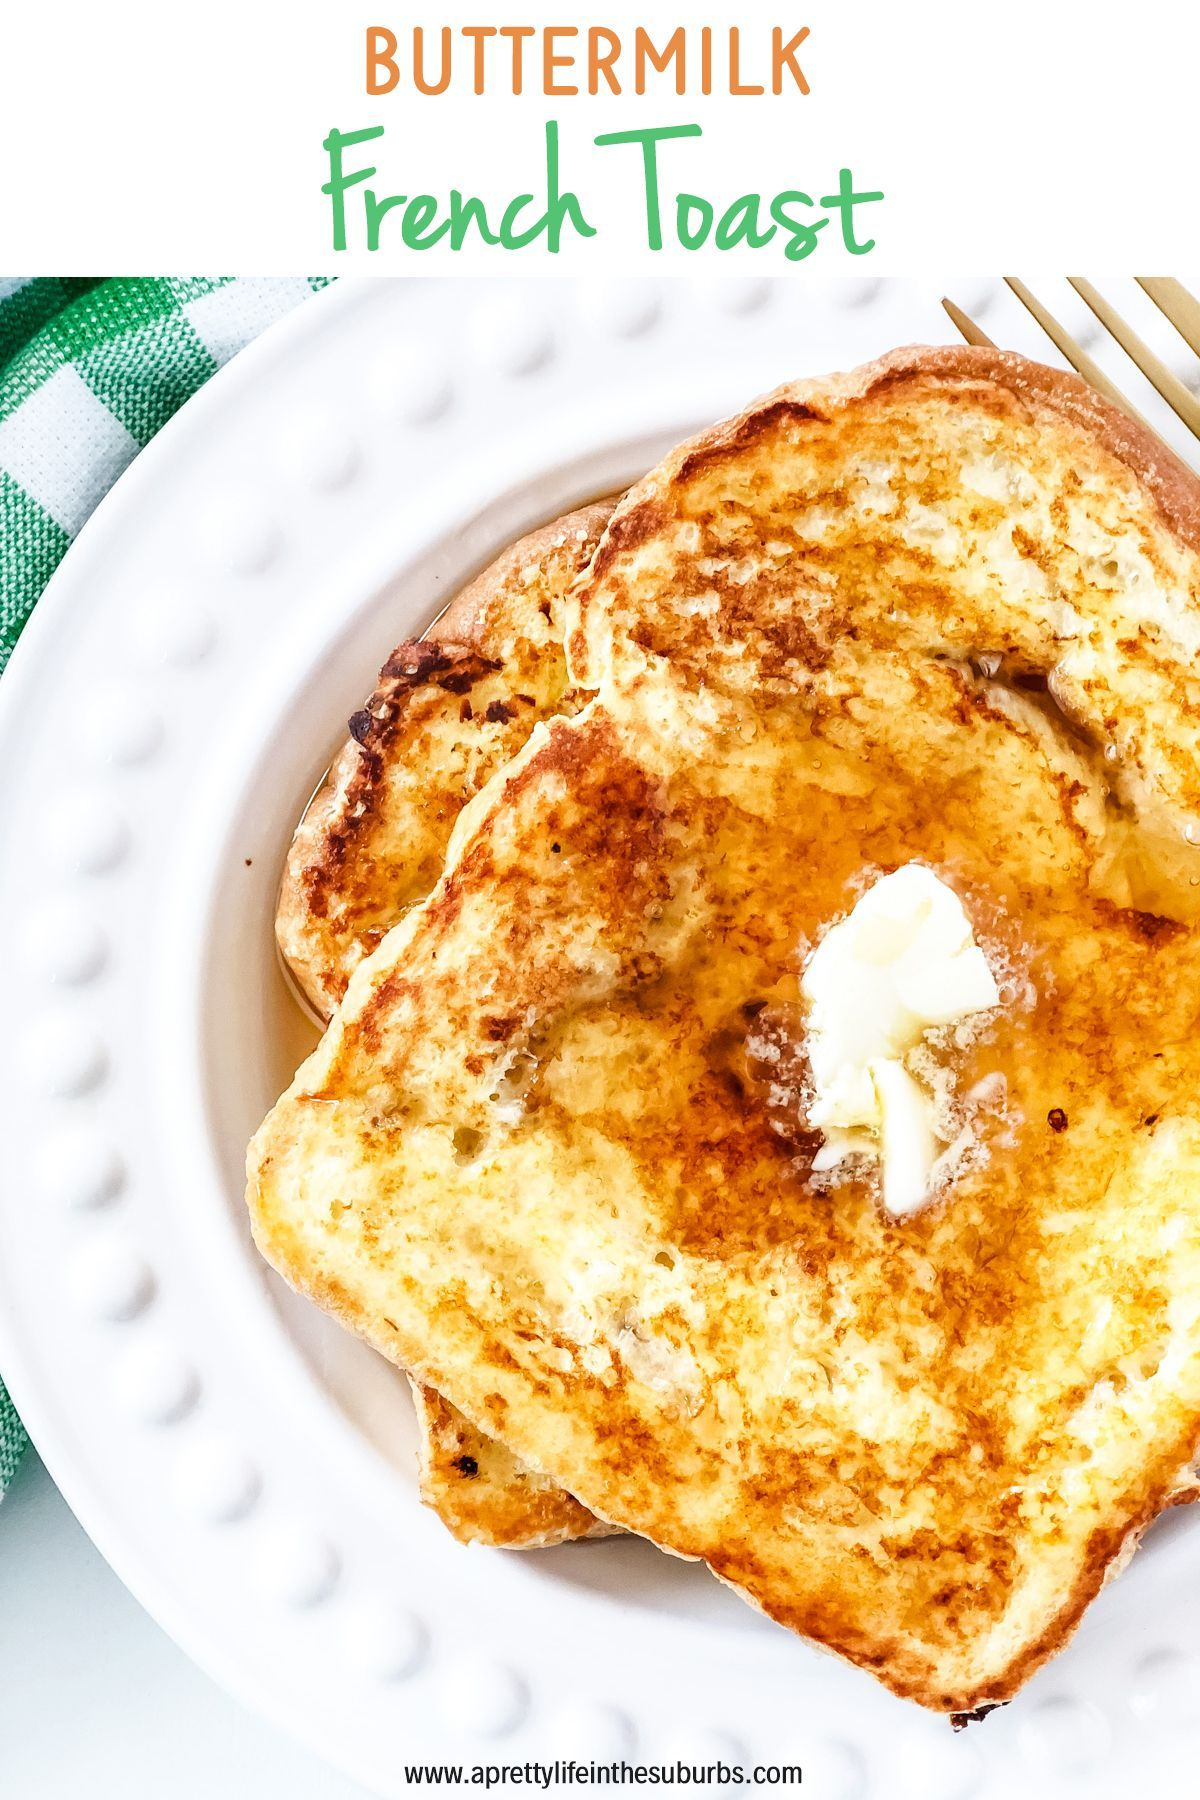 Buttermilk French Toast This Buttermilk French Toast Is An Easy Quick And Delicious In 2020 Buttermilk French Toast French Toast Easy French Toast Recipe Breakfast